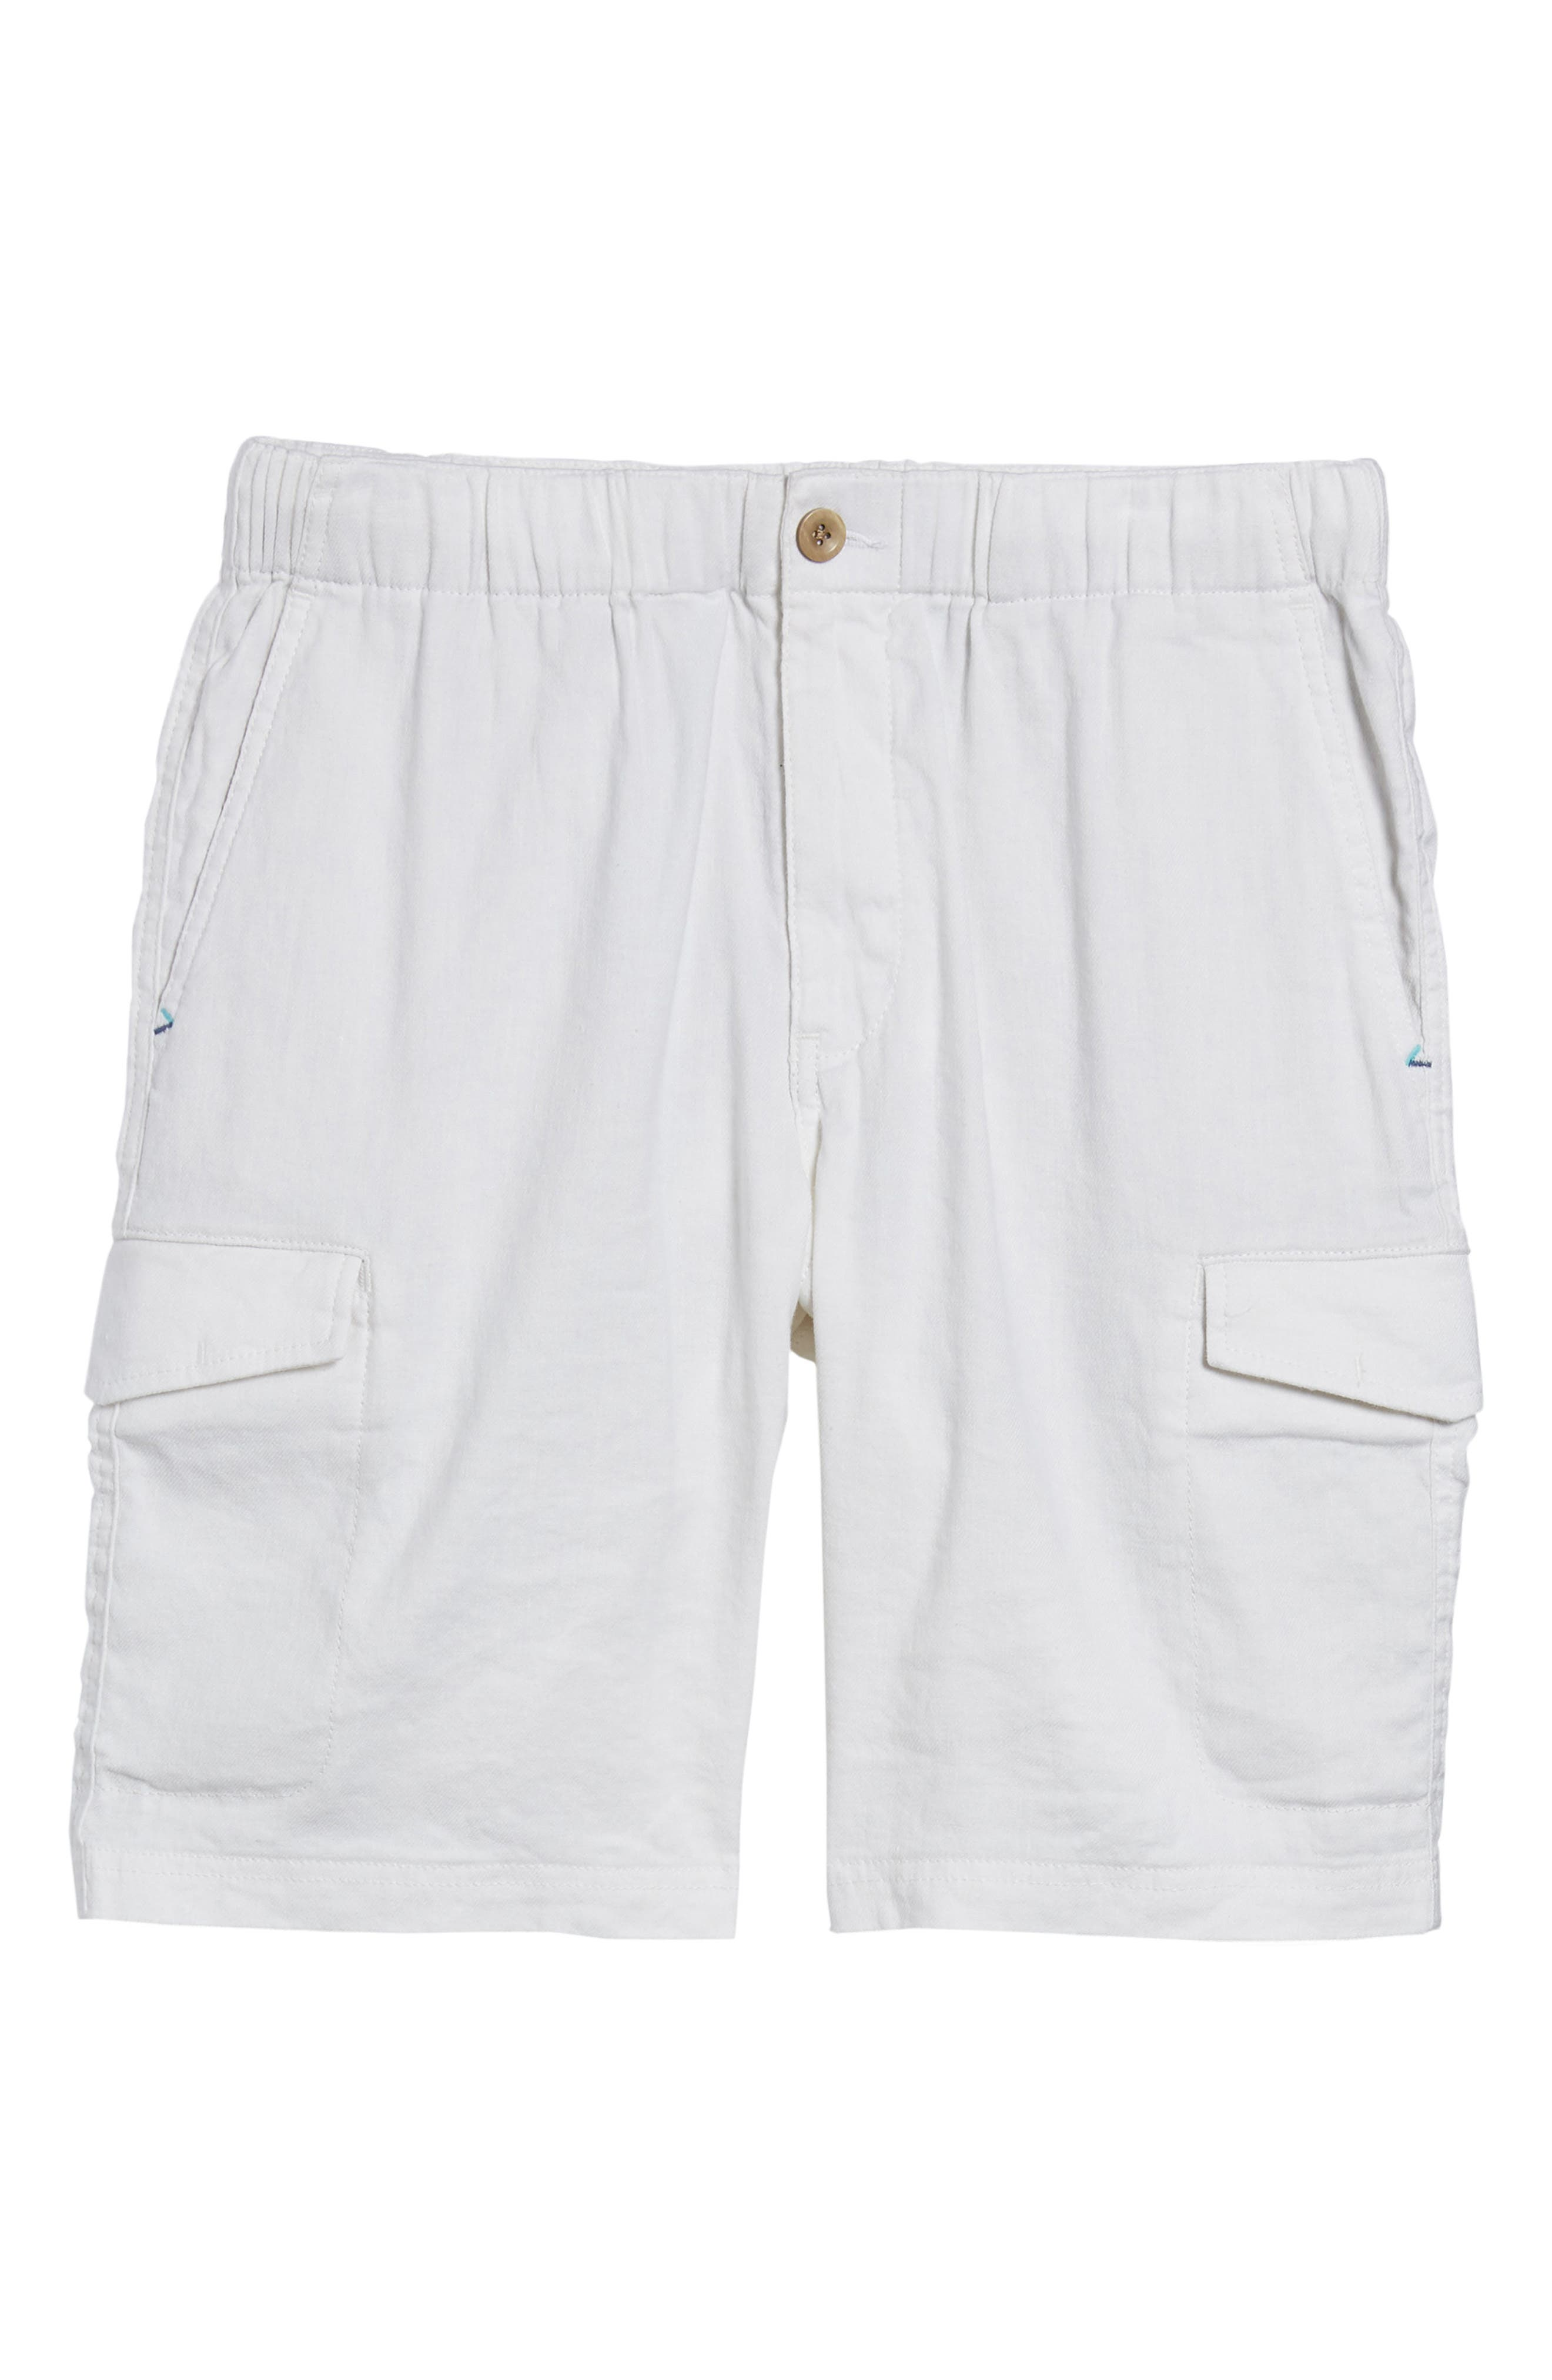 Beach Authentic Fit Linen Blend Cargo Shorts,                             Alternate thumbnail 6, color,                             Continental